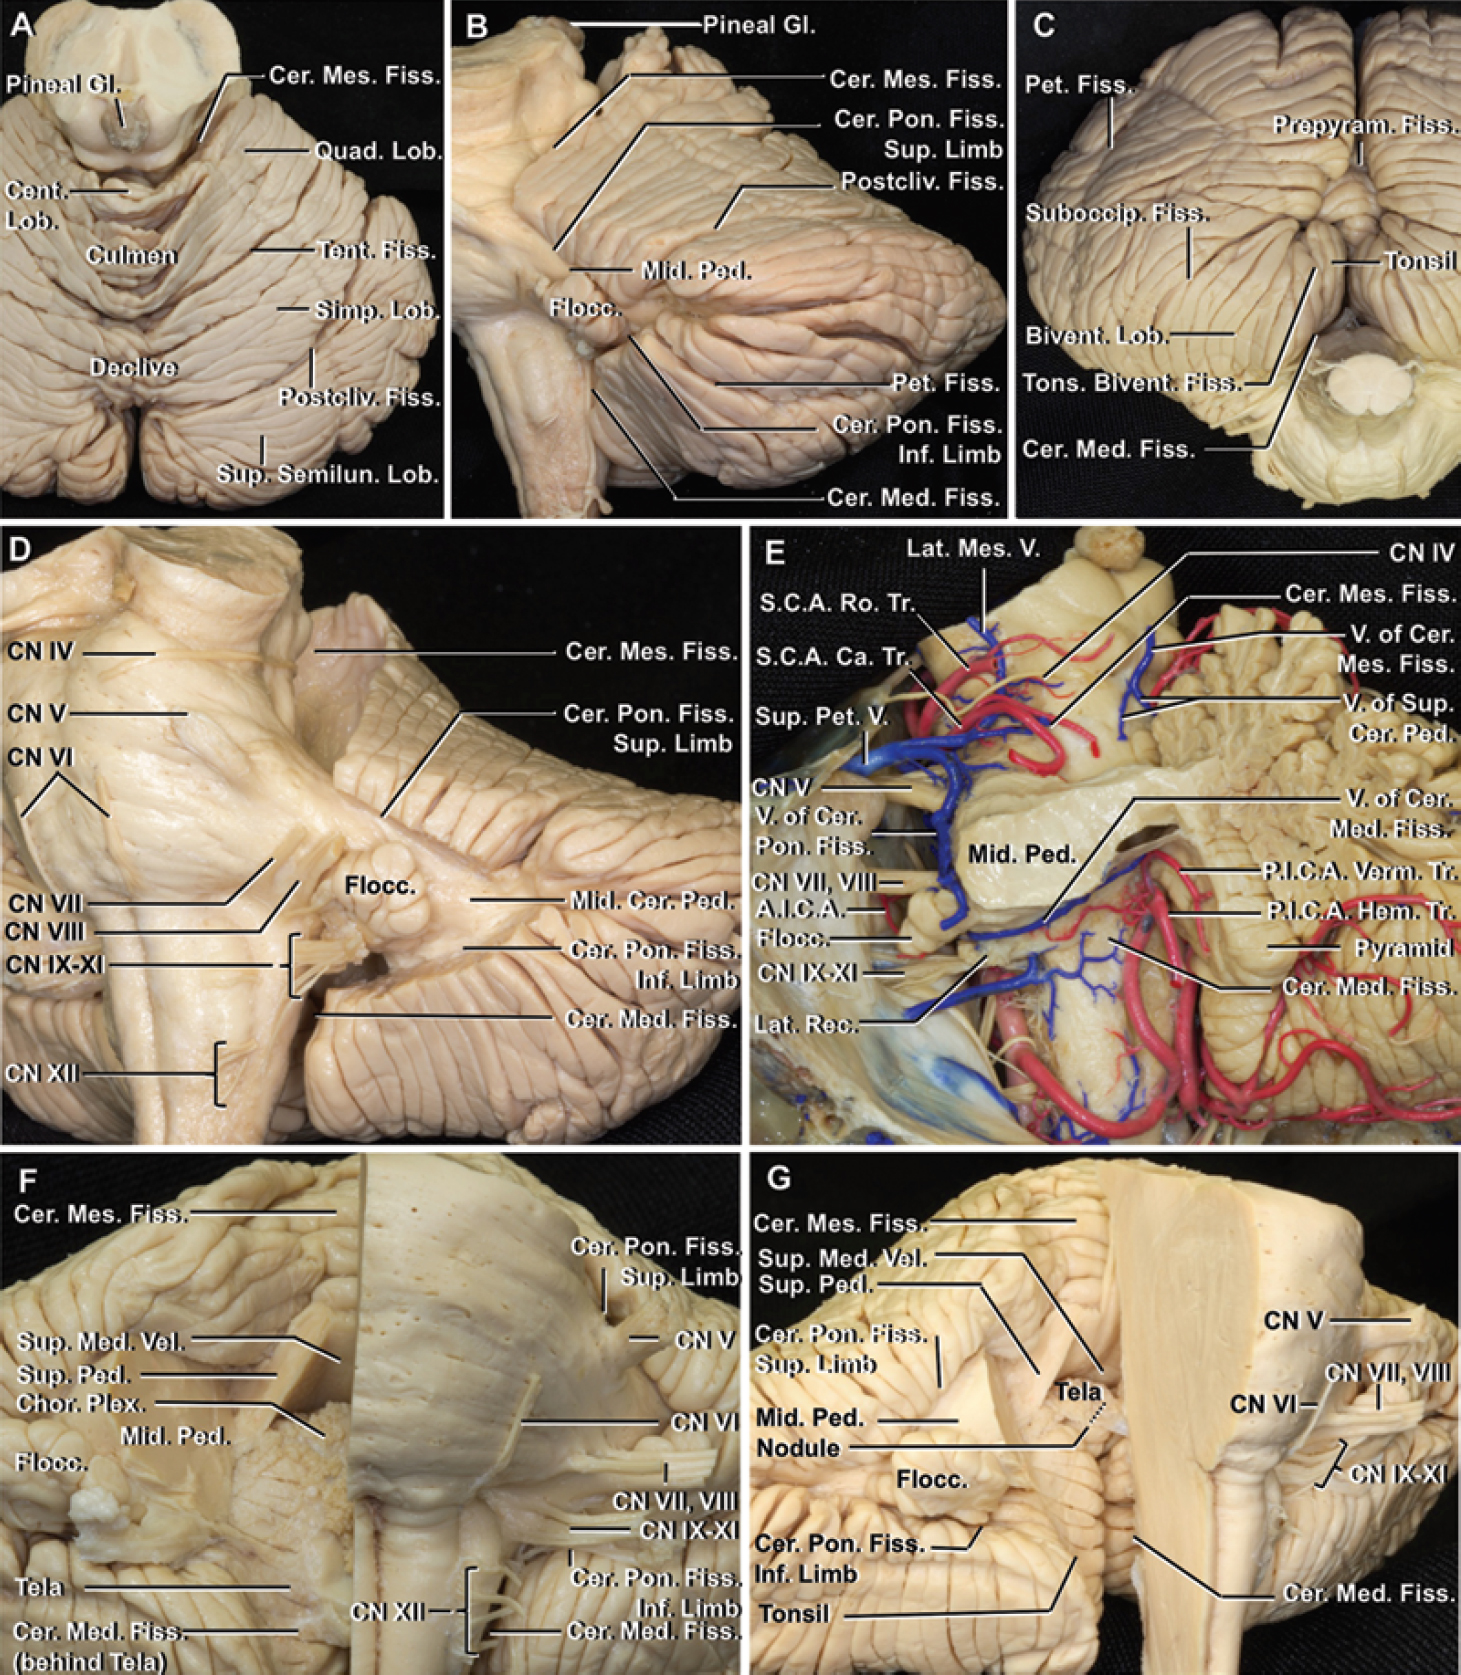 FIG. 1. Cerebellar-brainstem and cerebellar fissures and fourth ventricle. a: The tentorial (primary) and postclival fissures are located on the tentorial surface that faces the lower surface of the tentorium. The cerebellomesencephalic fissure, also referred to as the precentral cerebellar fissure, separates the tentorial surface from the dorsal surface of the midbrain. b: The petrosal surface faces forward toward the posterior surface of the temporal bone and wraps around the pons and the middle cerebellar peduncles to form the superior and inferior limbs of the cerebellopontine fissure. The petrosal (horizontal) and postclival fissures extend laterally and superiorly from the apex of the cerebellopontine fissure. The cerebellopontine fissure is continuous with the cerebellomesencephalic fissure superiorly and cerebellomedullary fissure inferiorly. c: The suboccipital surface, exposed in the suboccipital operative approaches and located below and between the sigmoid and transverse sinuses, is the site of the suboccipital fissure, which has a vermian part called the prepyramidal fissure, and a hemispheric part referred to as the prebiventral and tonsillobiventral (secondary) fissures. The cerebellomedullary fissure separates this surface from the medulla. d: Removing the cerebellar margin of the 3 cerebellar-brainstem fissures exposes the interior of the fissures and the areas of communication between these fissures. e: Posterolateral view. Removing the left half of the cerebellum exposes the 3 cerebellar-brainstem fissures and major vessels in these fissures. F: The right half of the brainstem has been removed to provide an anterior view of the cerebellomesencephalic and cerebellomedullary fissures, and the roof of the fourth ventricle formed, from rostral to caudal, by the superior and inferior medullary vela, and the tela choroidea, in which the choroid plexus arises. g: Removing the tela choroidea in the roof of the fourth ventricle exposes the surface of the nodule and tonsil facing the cerebellomedullary fissure. A.I.C.A. = anterior inferior cerebellar artery; Bivent. = biventral; Ca. = caudal; Cent. = central; Cer. = cerebellar, cerebello; Chor. Plex. = choroid plexus; CN = cranial nerve; Fiss. = fissure; Flocc. = flocculus; Gl. = gland; Hem. = hemispheric; Inf. = inferior; Lat. = lateral; Lob. = lobule; Med. = medullary; Mes. = mesencephalic; Mid. = middle; P.I.C.A. = posterior inferior cerebellar artery; Ped. = peduncle; Pet. = petrosal; Pon. = pontine; Postcliv. = postclival; Prepyram. = prepyramidal; Quad. = quadrangular; Rec. = recess; Ro. = rostral; S.C.A. = superior cerebellar artery; Semilun. = semilunar; Simp. = simple; Suboccip. = suboccipital; Sup. = superior; Tent. = tentorial; Tons. = tonsillo; Tr. = trunk; V. = vein; Vel. = velum; Verm. = vermian.